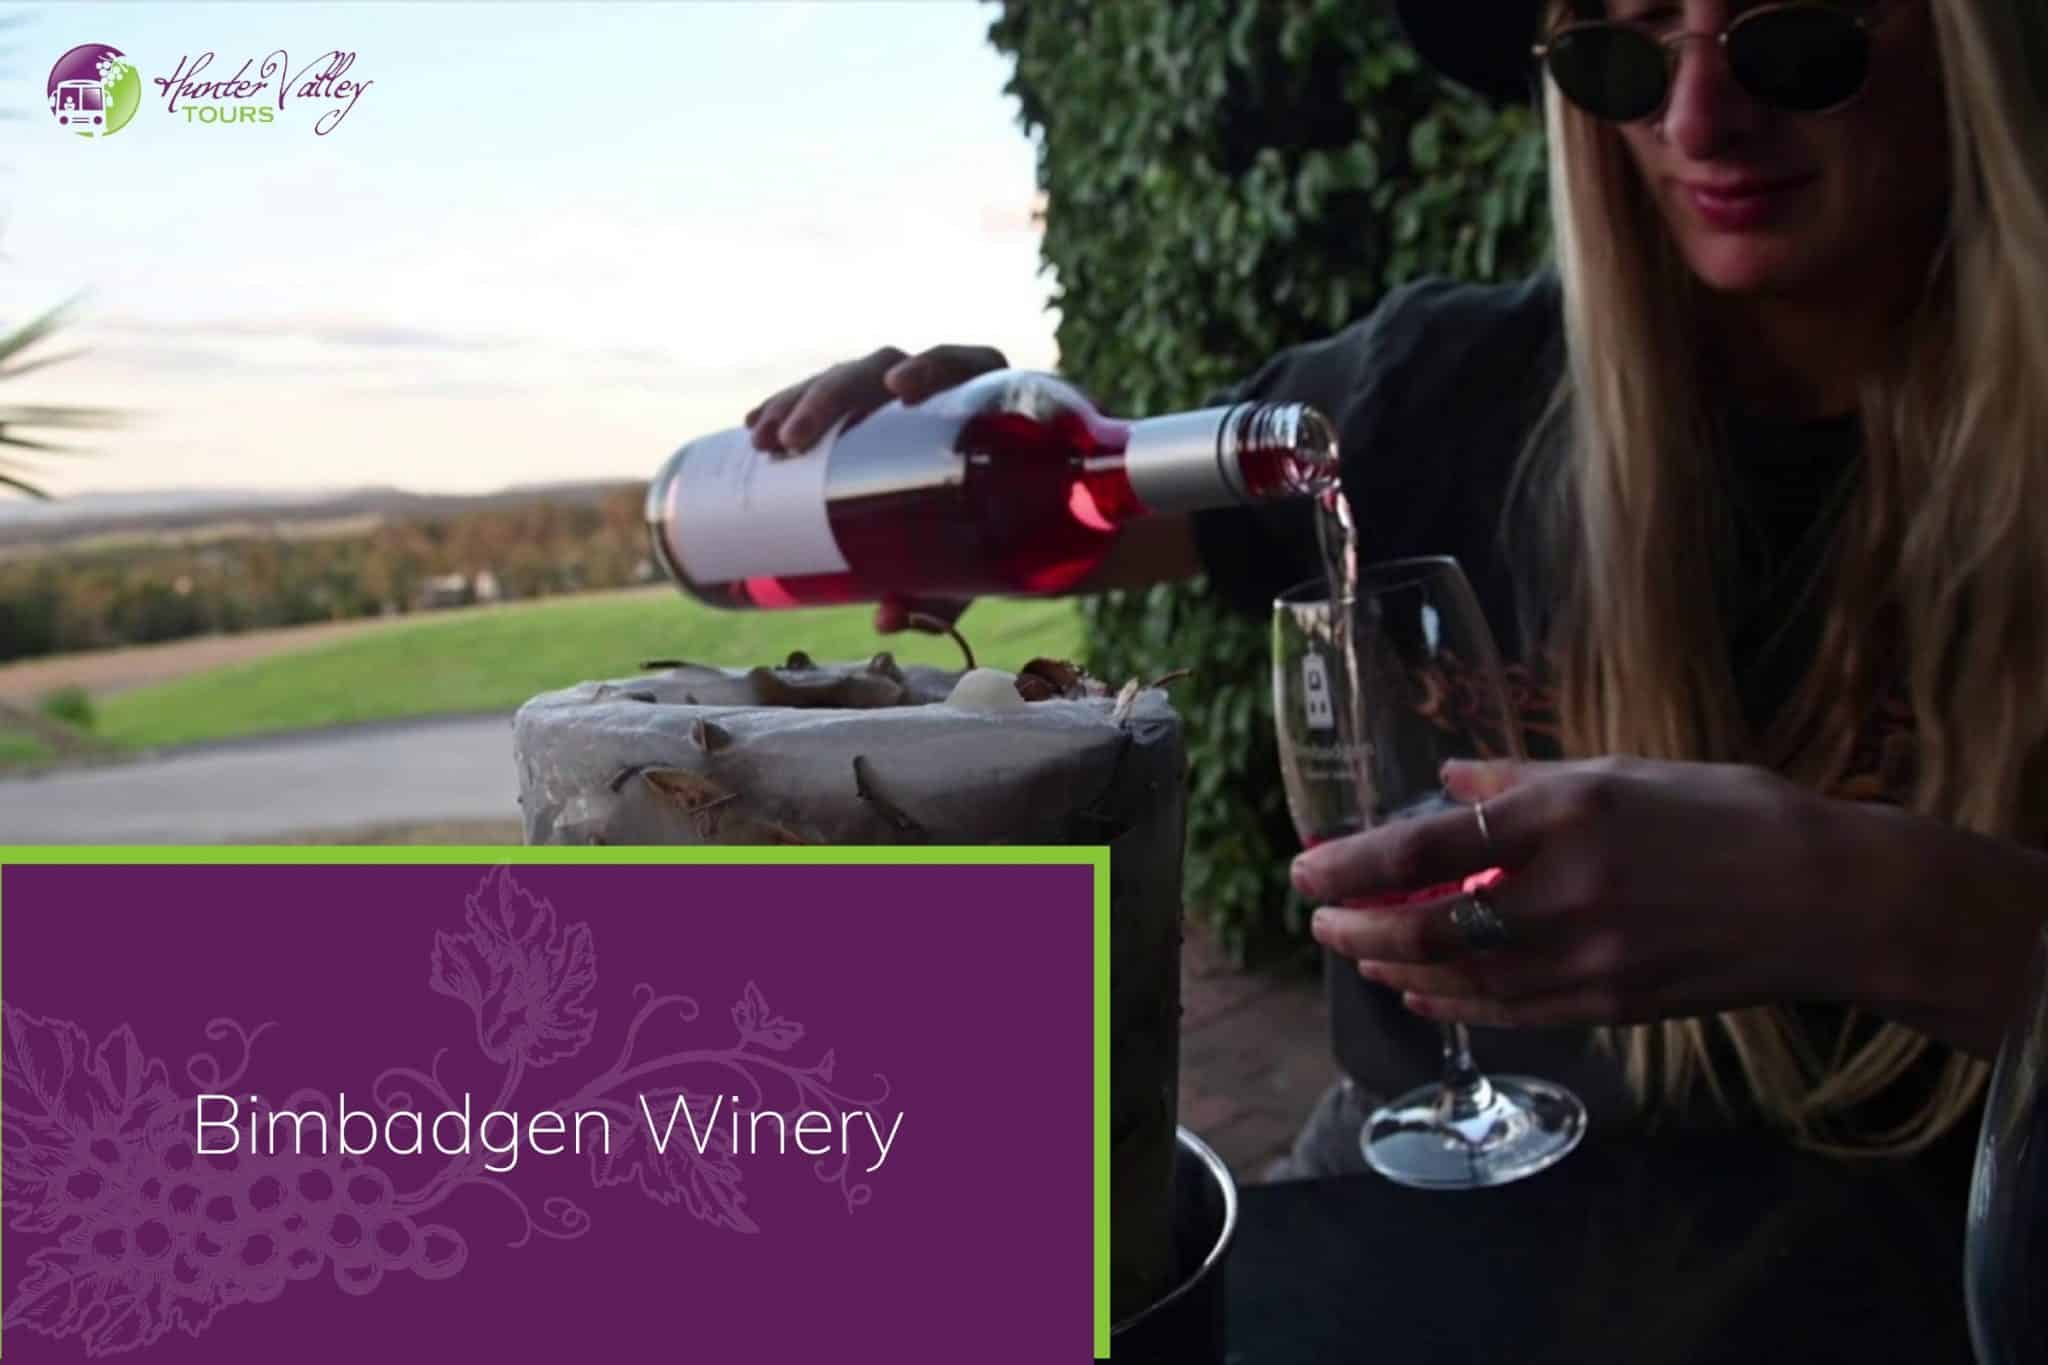 Bimbadgen Winery